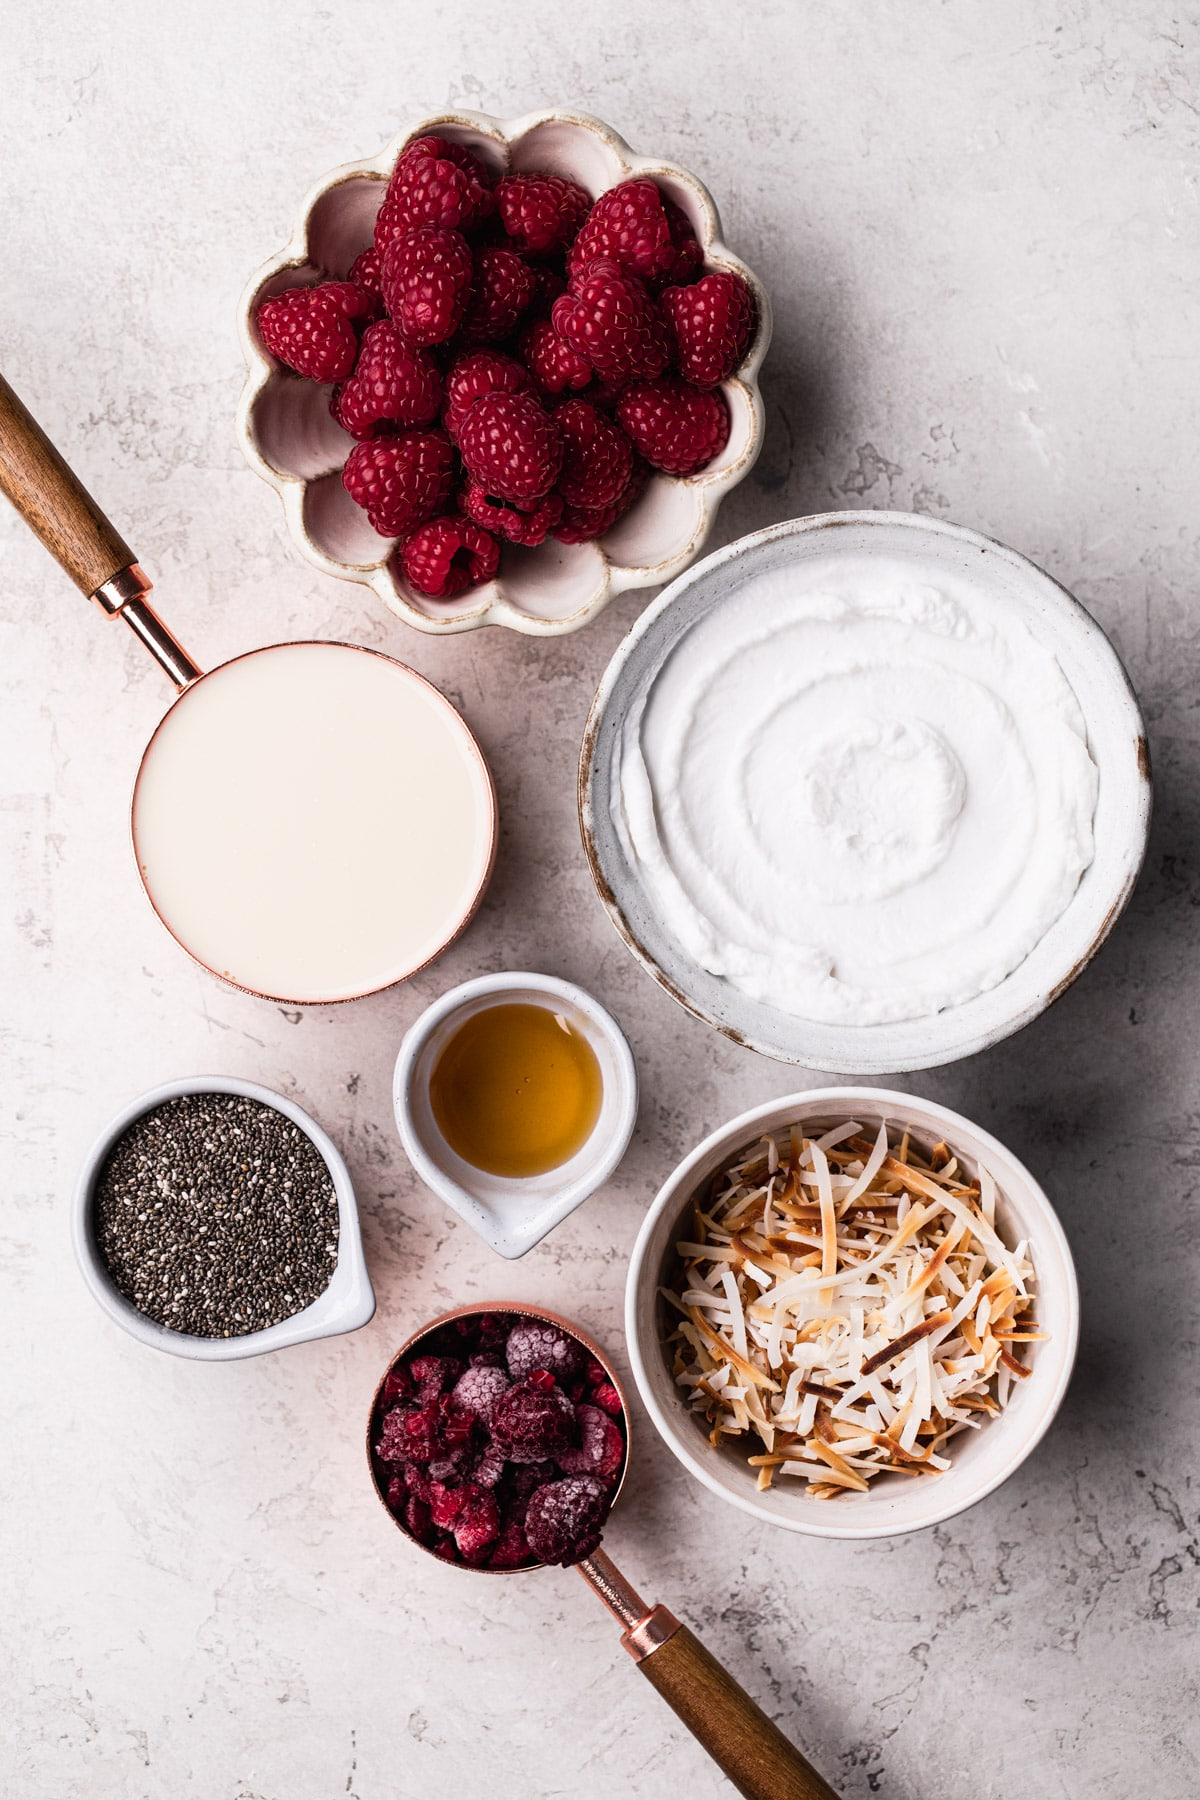 ingredients needed for chia pudding including chia seeds, plant based milk and honey